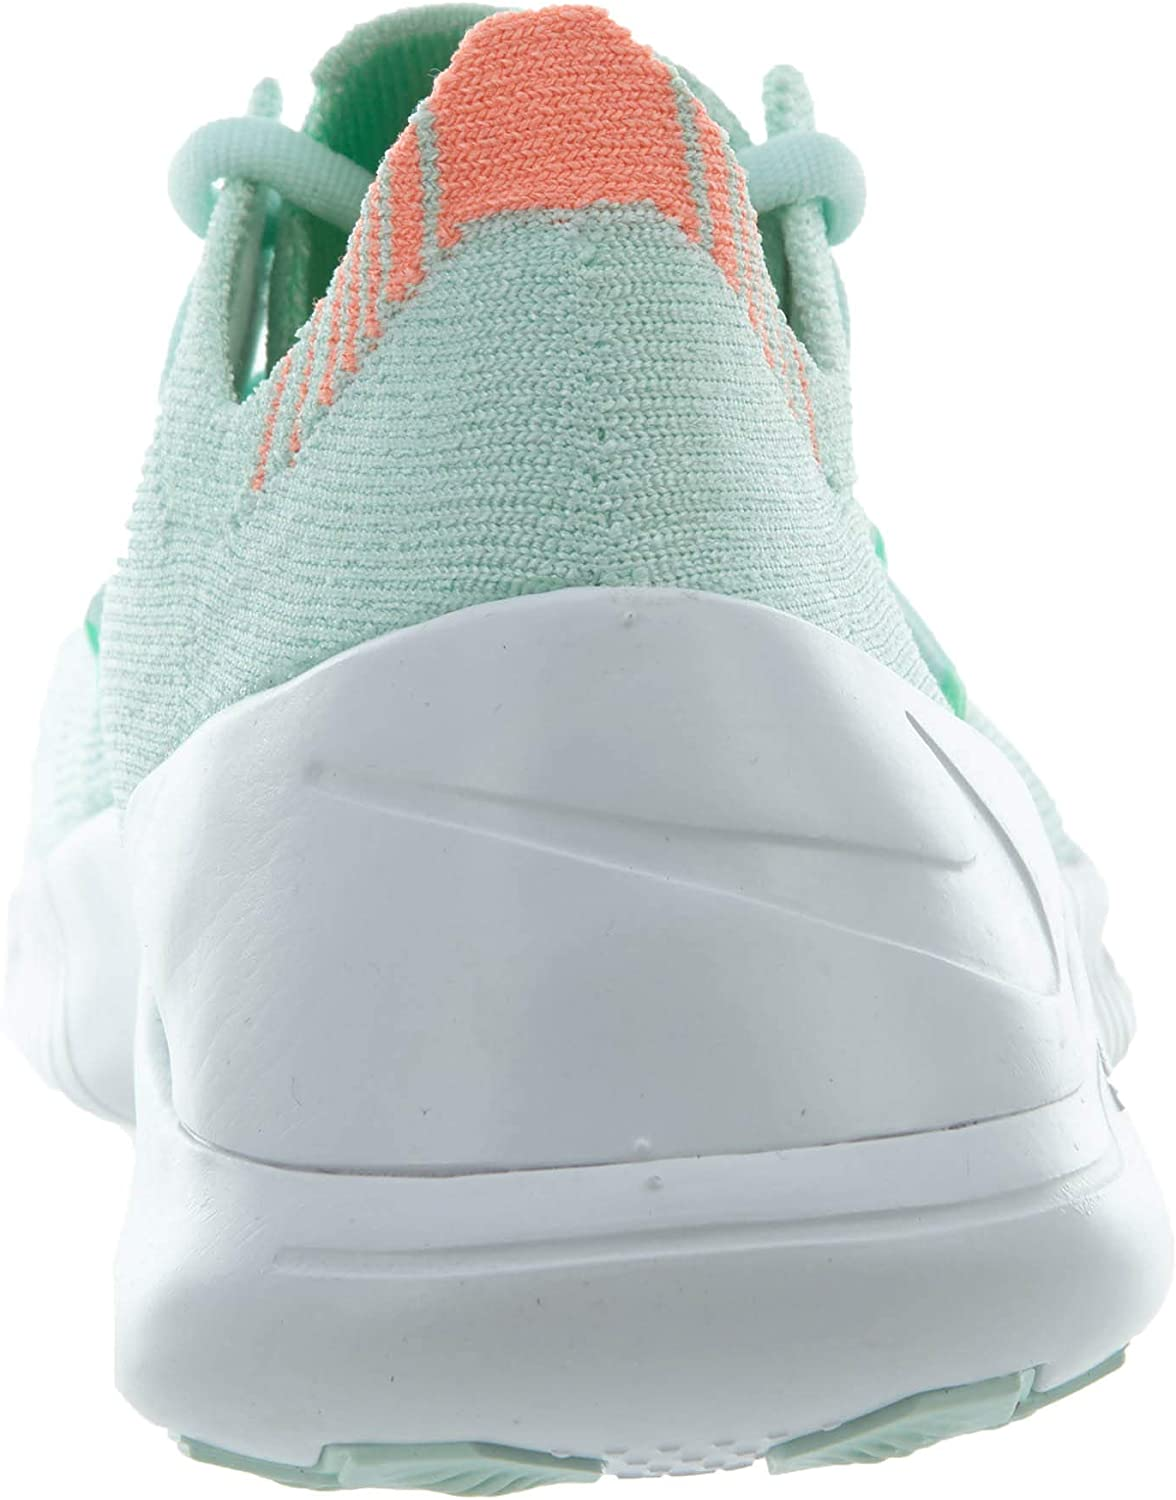 Nike Womens Free TR Flyknit 3 Work Out Low Top Running, Cross Training Shoes Igloo/White-crimson Pulse